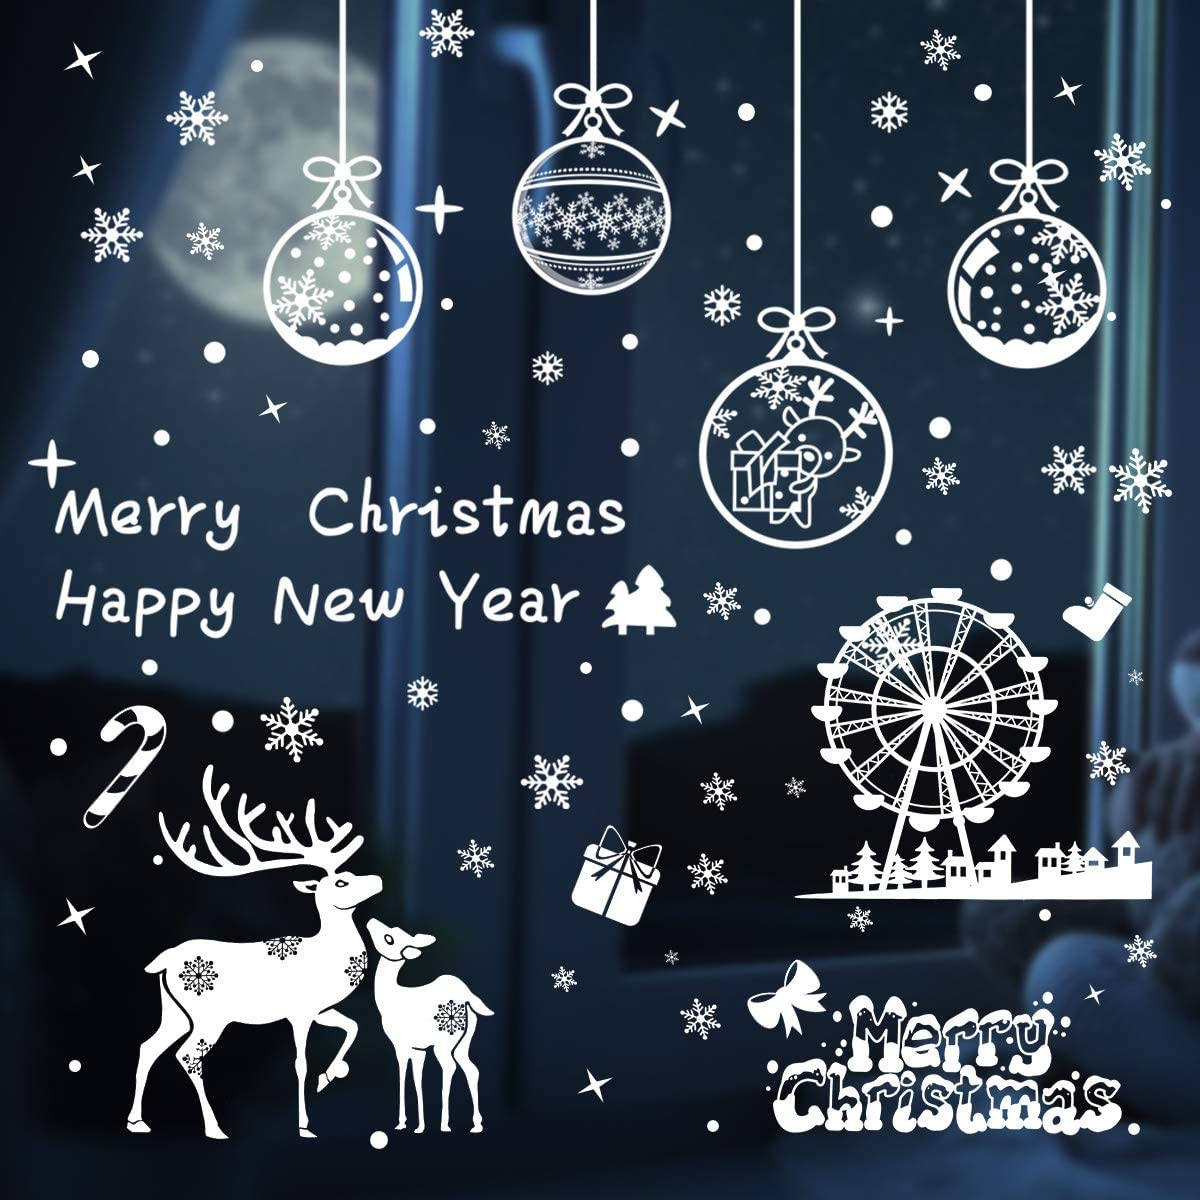 Max New arrival 45% OFF Christmas Window Clings Decorations Snowflake Decals White Windo